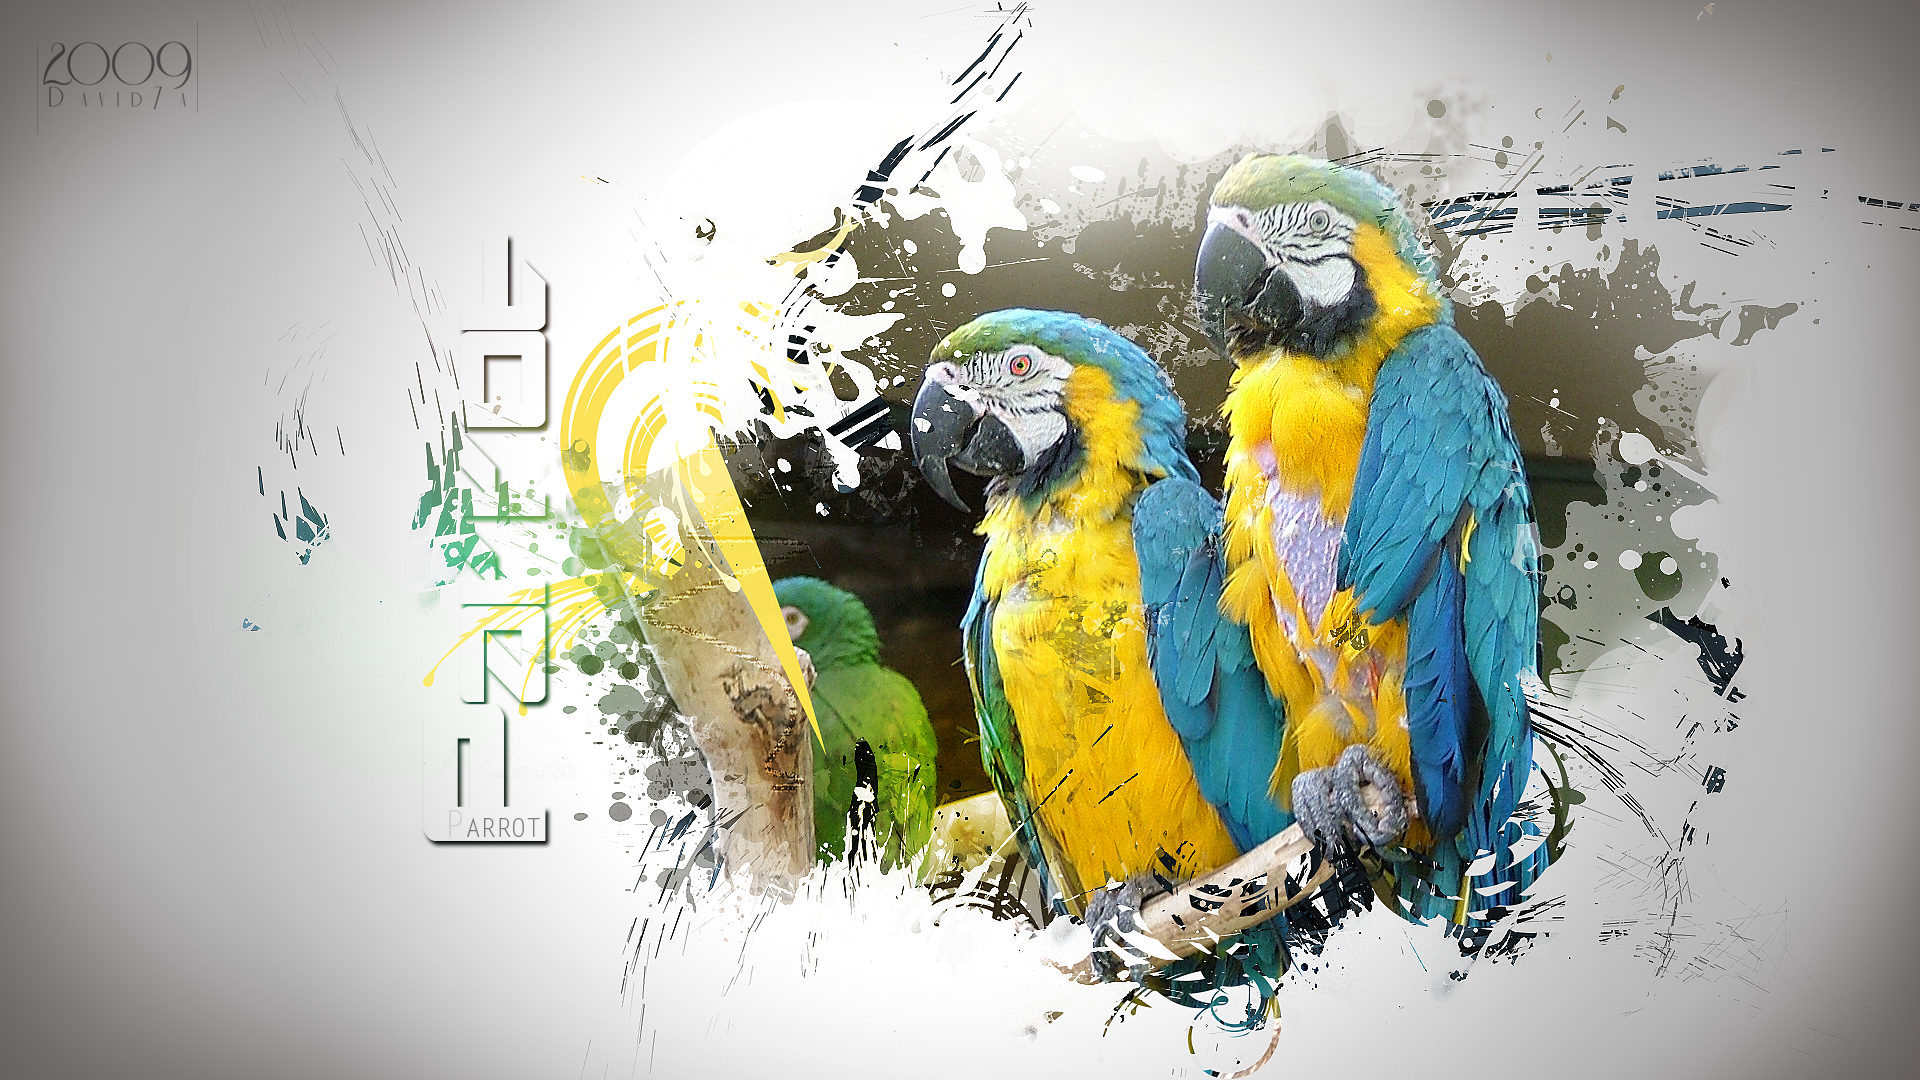 http://fc08.deviantart.net/fs49/f/2009/209/5/3/Parrot_Wallpaper_2_by_David7A.png